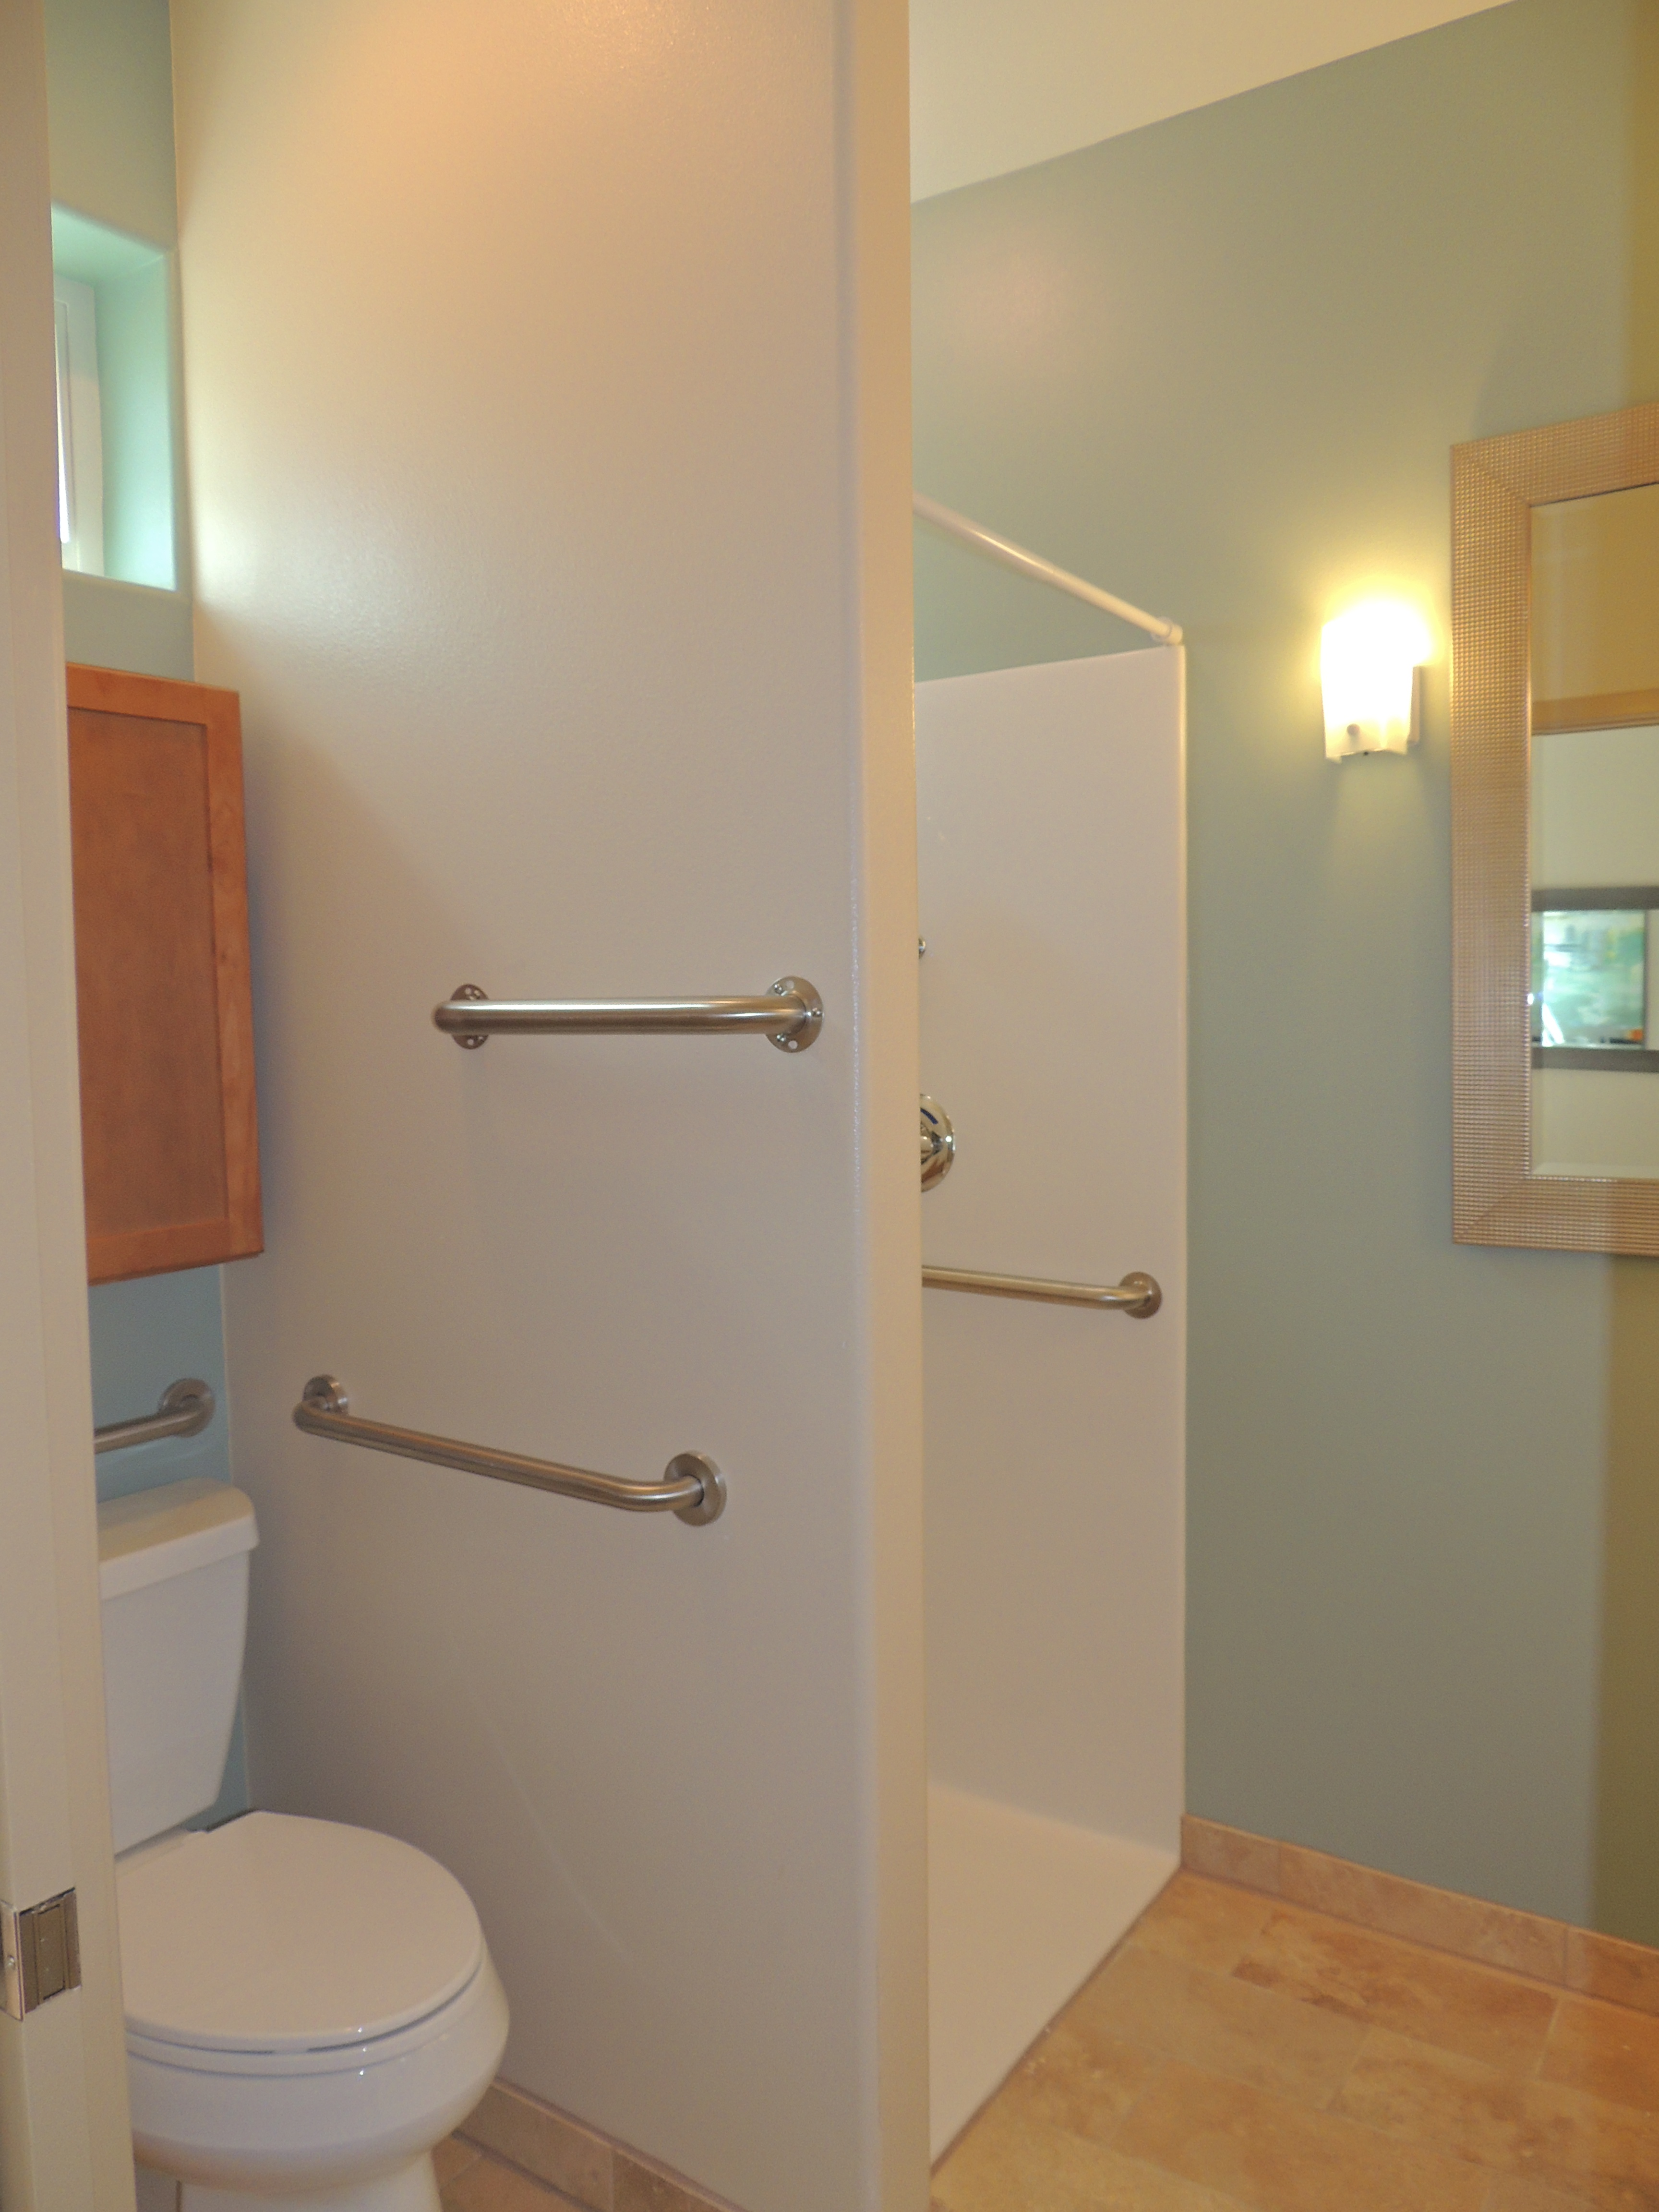 Bathroom Modifications For Disabled In Austin TX - Bathroom modifications